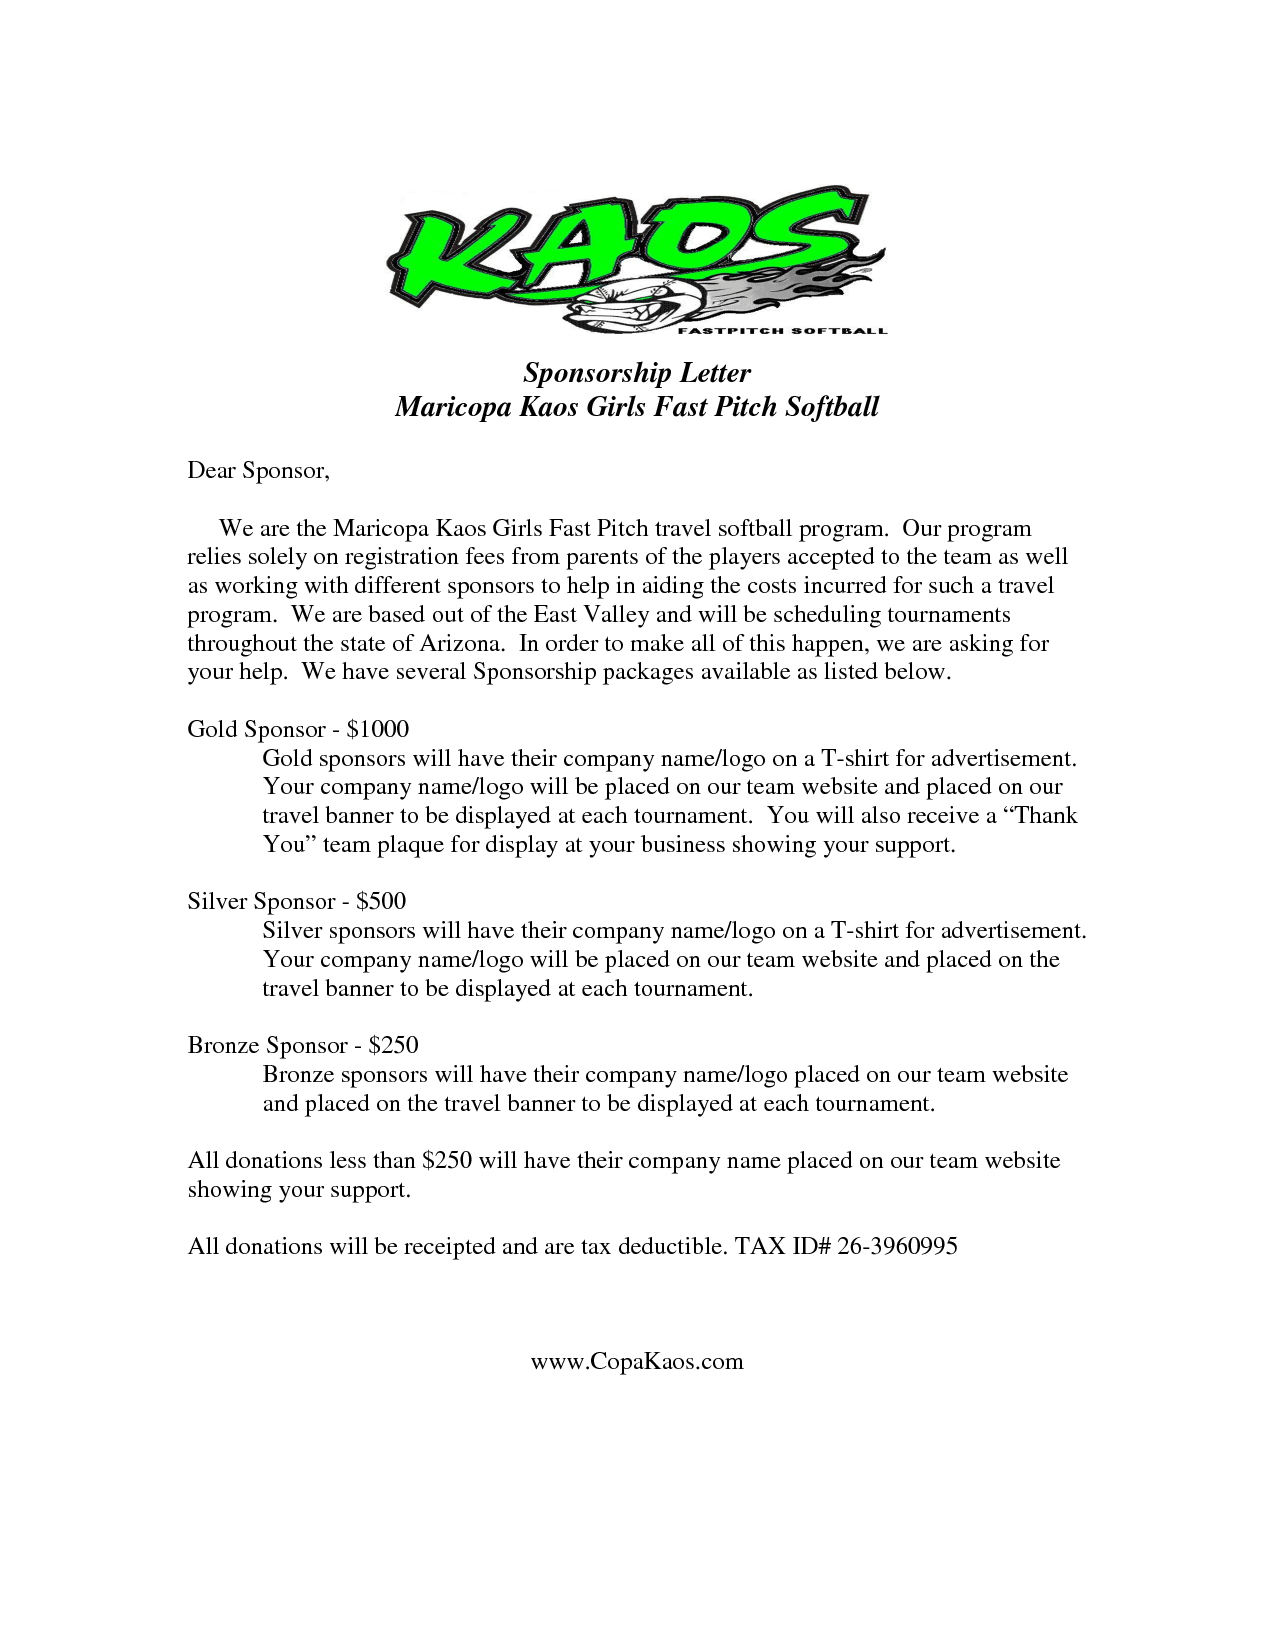 youth baseball sponsorship letter template example-Image result for sample sponsor request letter donation 13-q